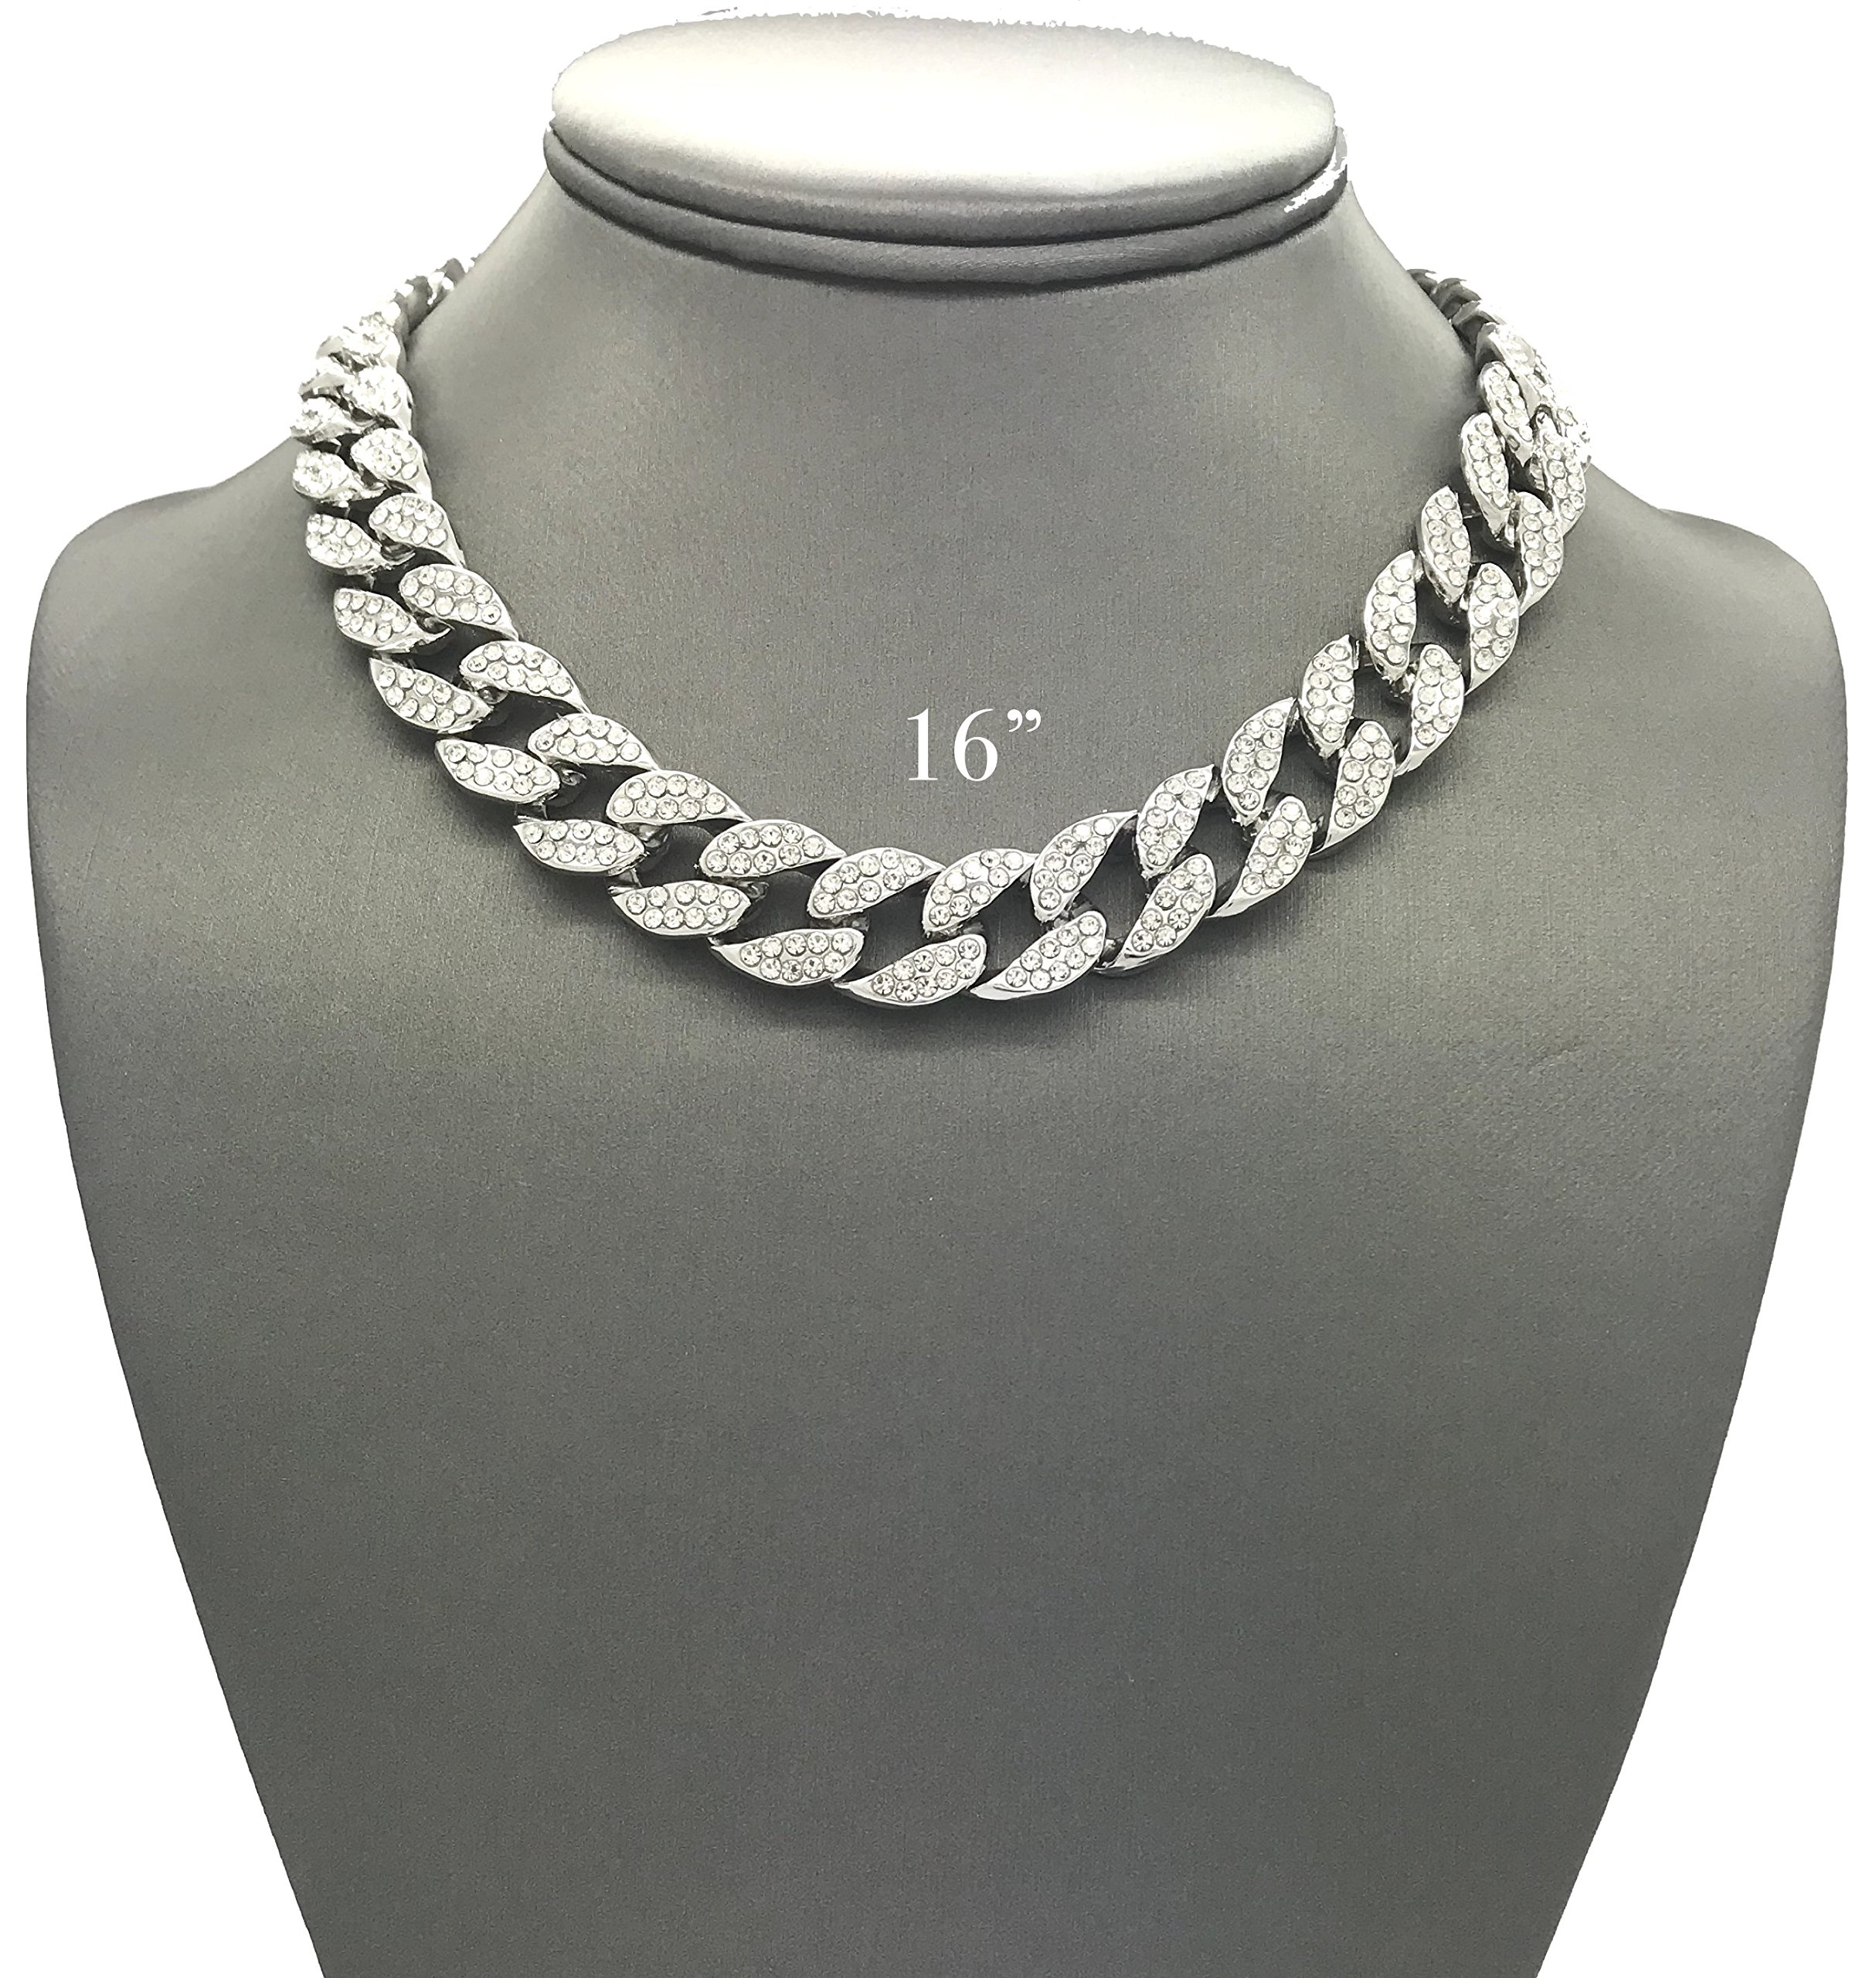 Mens Iced Out Hip Hop Silver tone CZ Miami Cuban Link Chain Choker Necklace (16'')